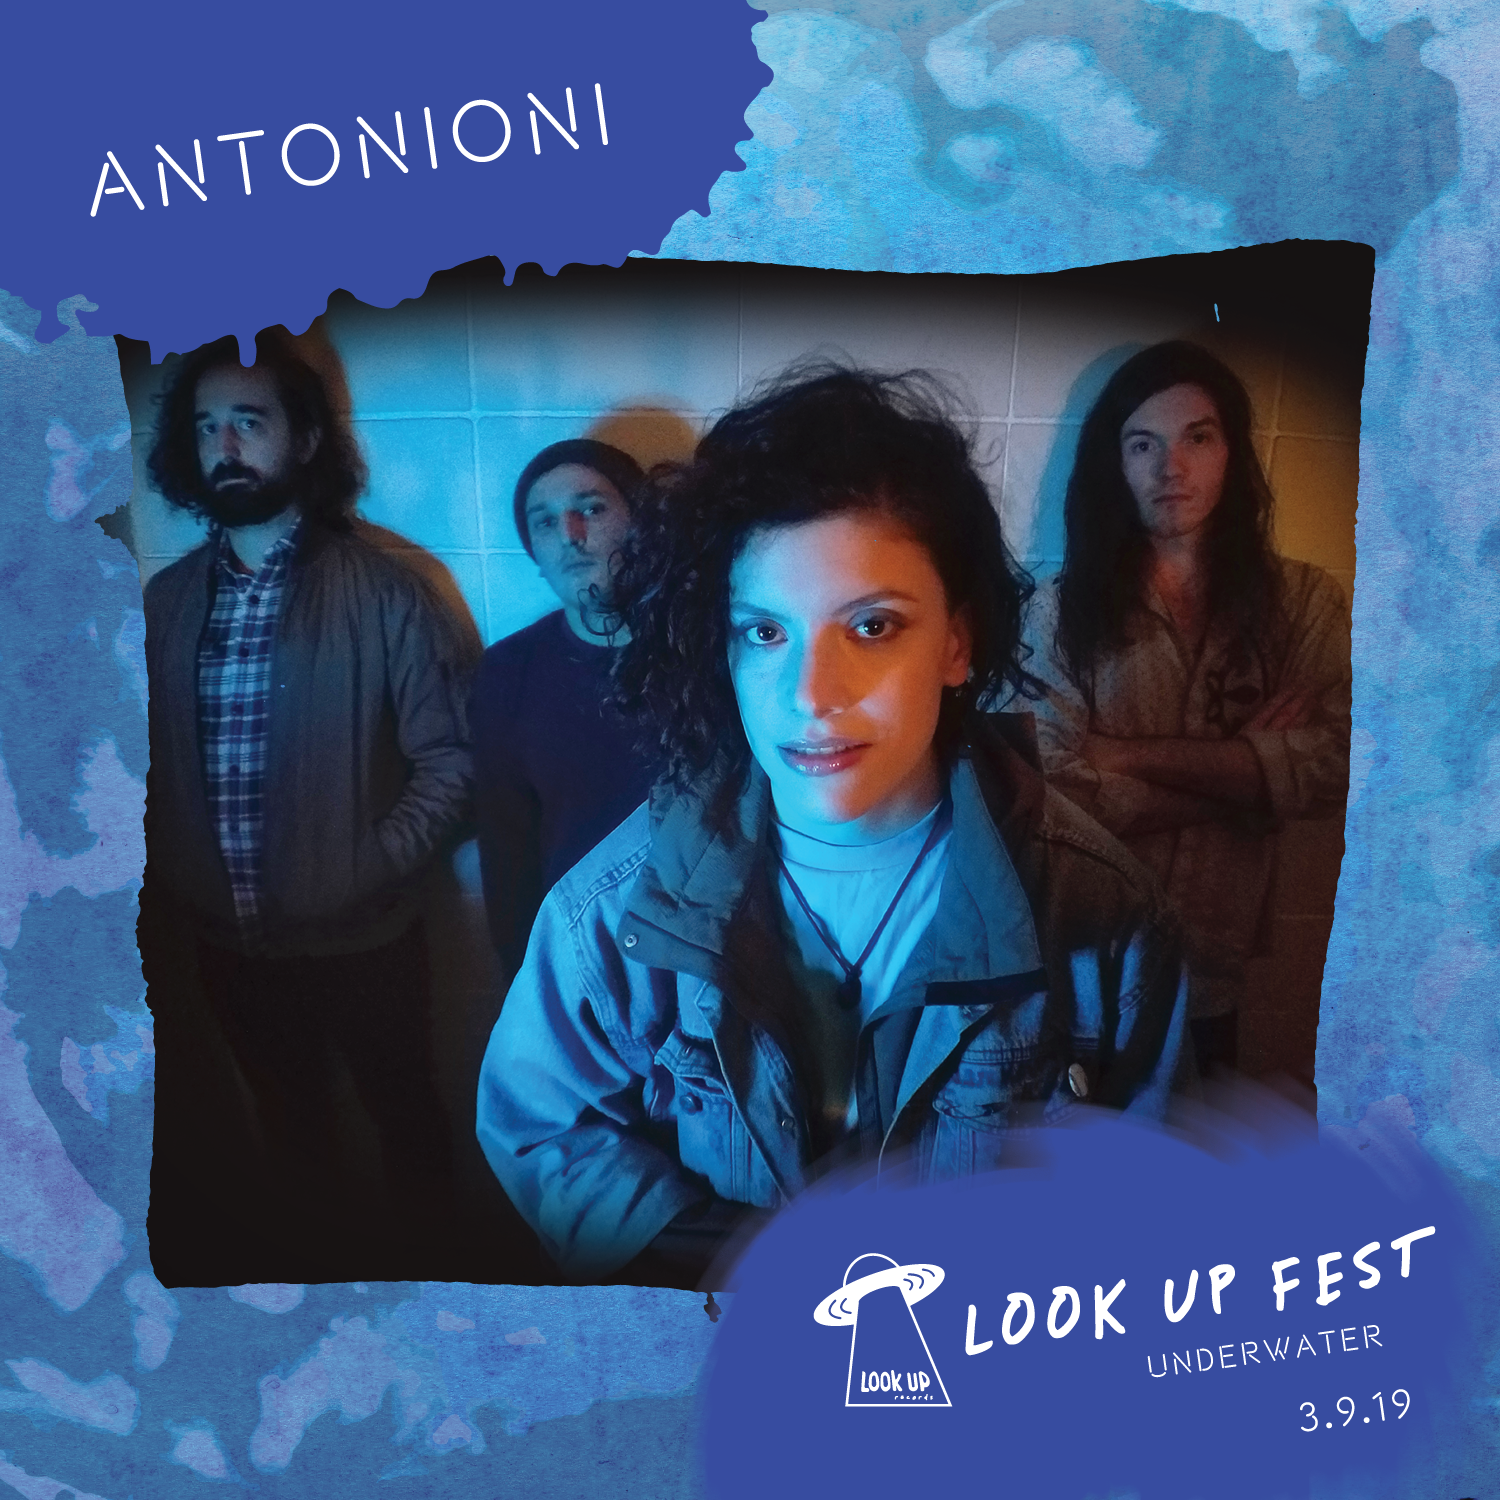 ANTONIONI - Antonioni began in 2016 when longtime Seattle solo artist, Sarah Pasillas, recruited band members to flesh out and record several songs she had written for her next album. Their new EP, The Odds Were All Beating Me, a polished and more expansive effort - was released in January 2019 on Den Tapes. The Odds Were All Beating Me was recorded with Rick Hoag (Lonely Mountain Lovers) and mastered by Levi Seitz (Jenn Champion, Pearl Jam, Sloucher). Inspired by sci-fi literature, surrealist films, and her own personal mythology, the EP consists of five songs, finding vocalist Sarah Pasillas carefully examining the internal peaks and valleys of coping with anxiety and uncertainty. The Odds Were All Beating Me incorporates bits of 90's guitar-driven alternative, Eno-esque new wave, and smooth dreampop into eclectic and layered Northwest indie -pop/rock.